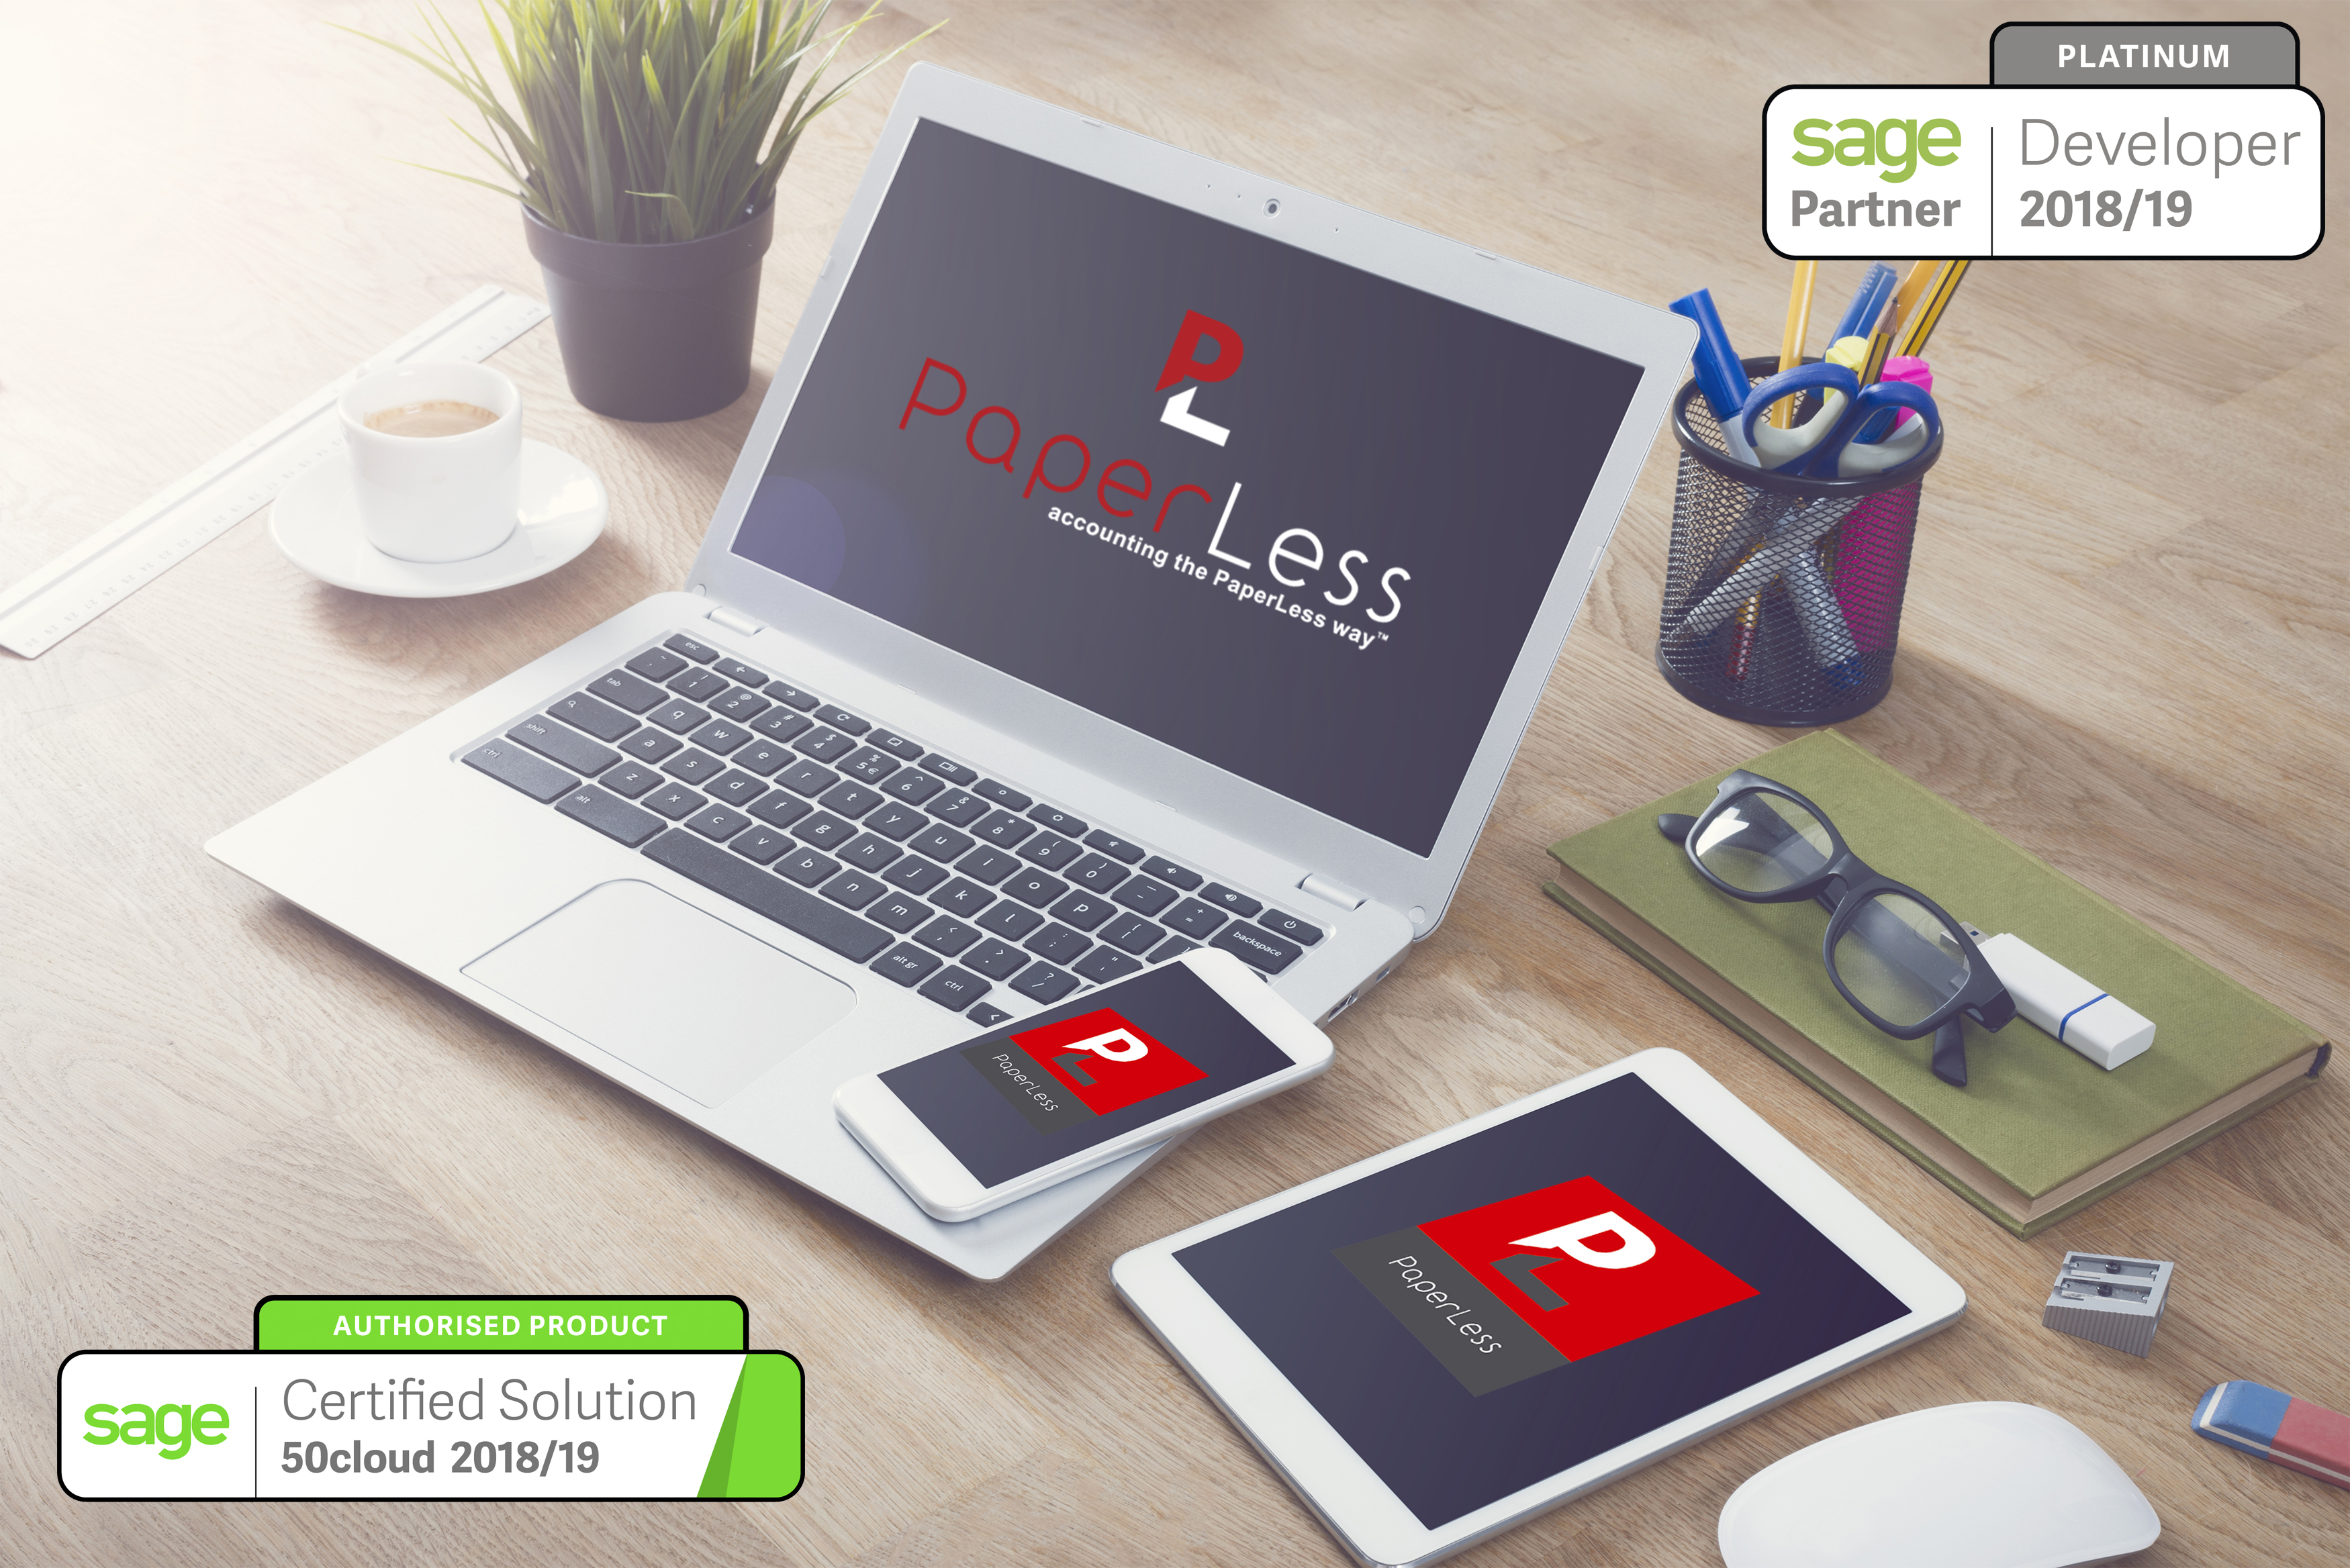 Click here to find out more about PaperLess for Sage